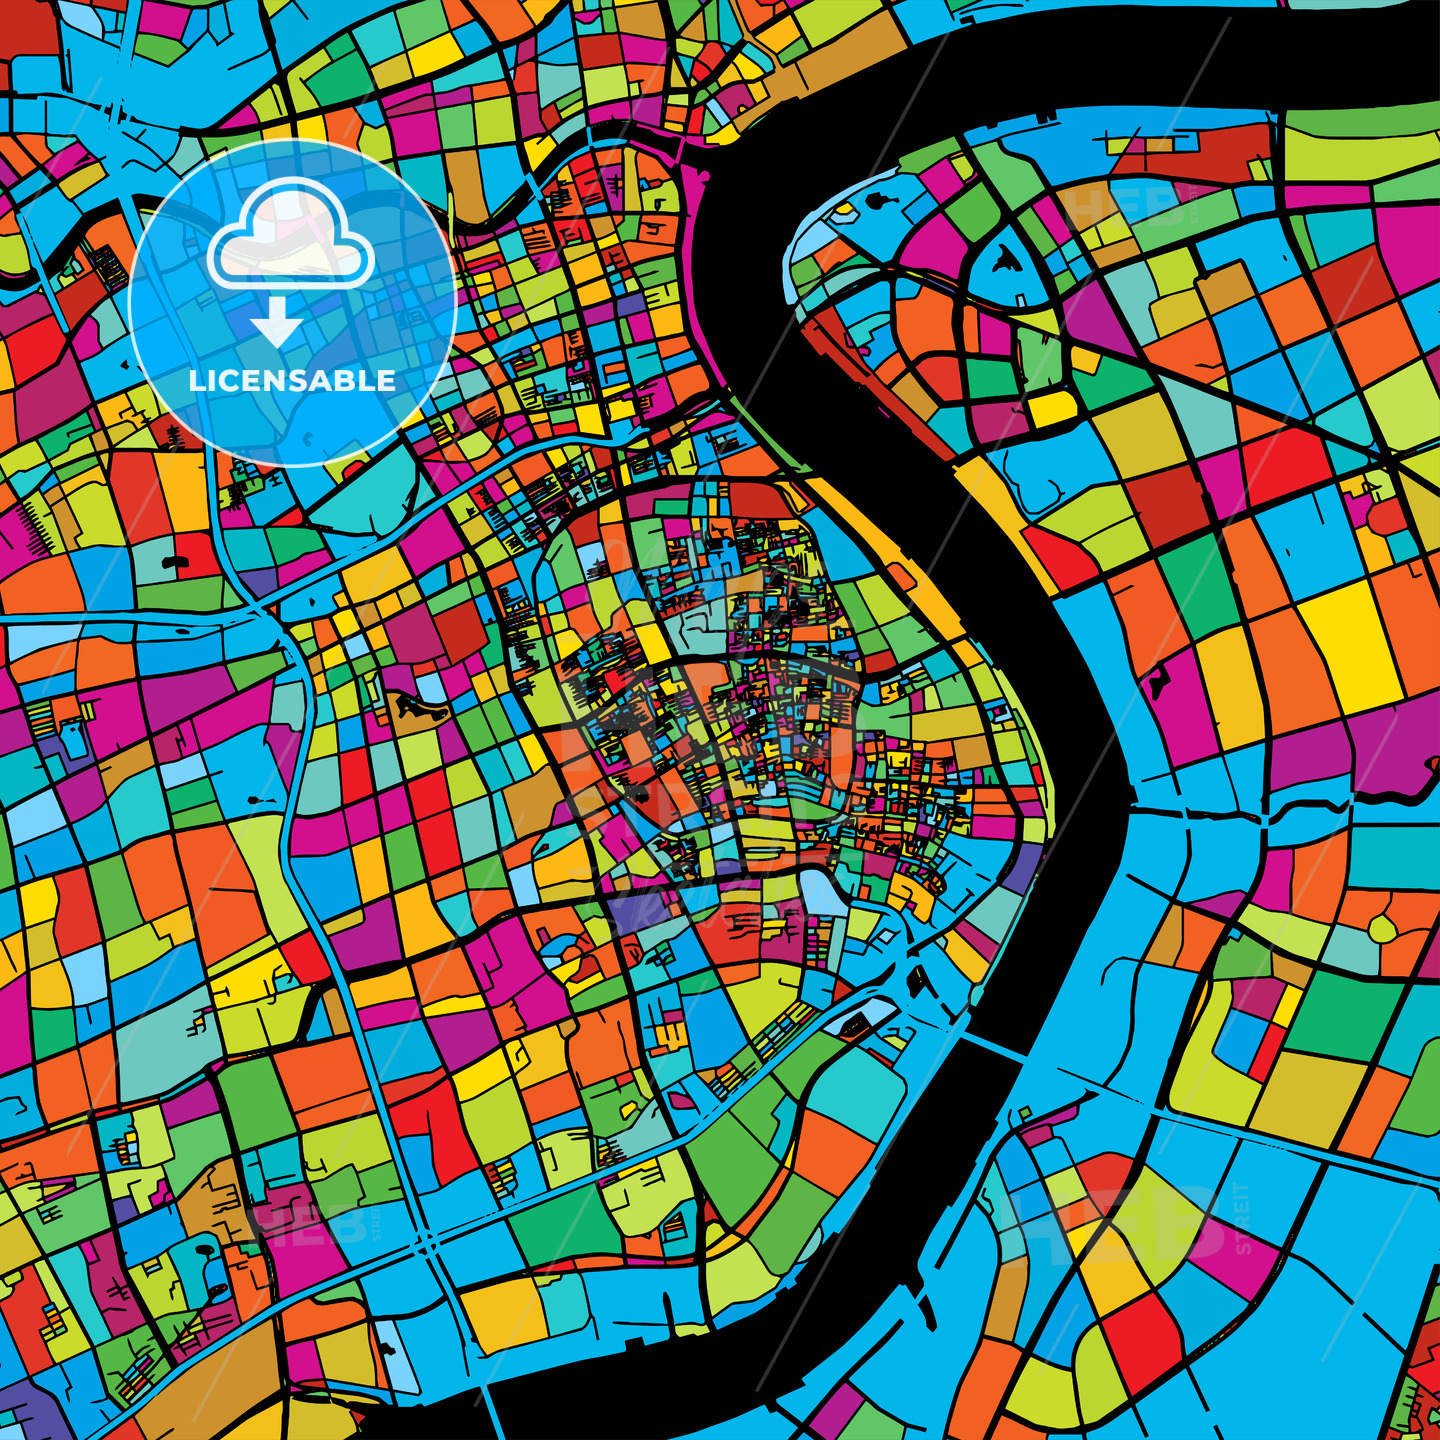 Shanghai, China, Colorful Vector Map on Black - HEBSTREIT's Sketches